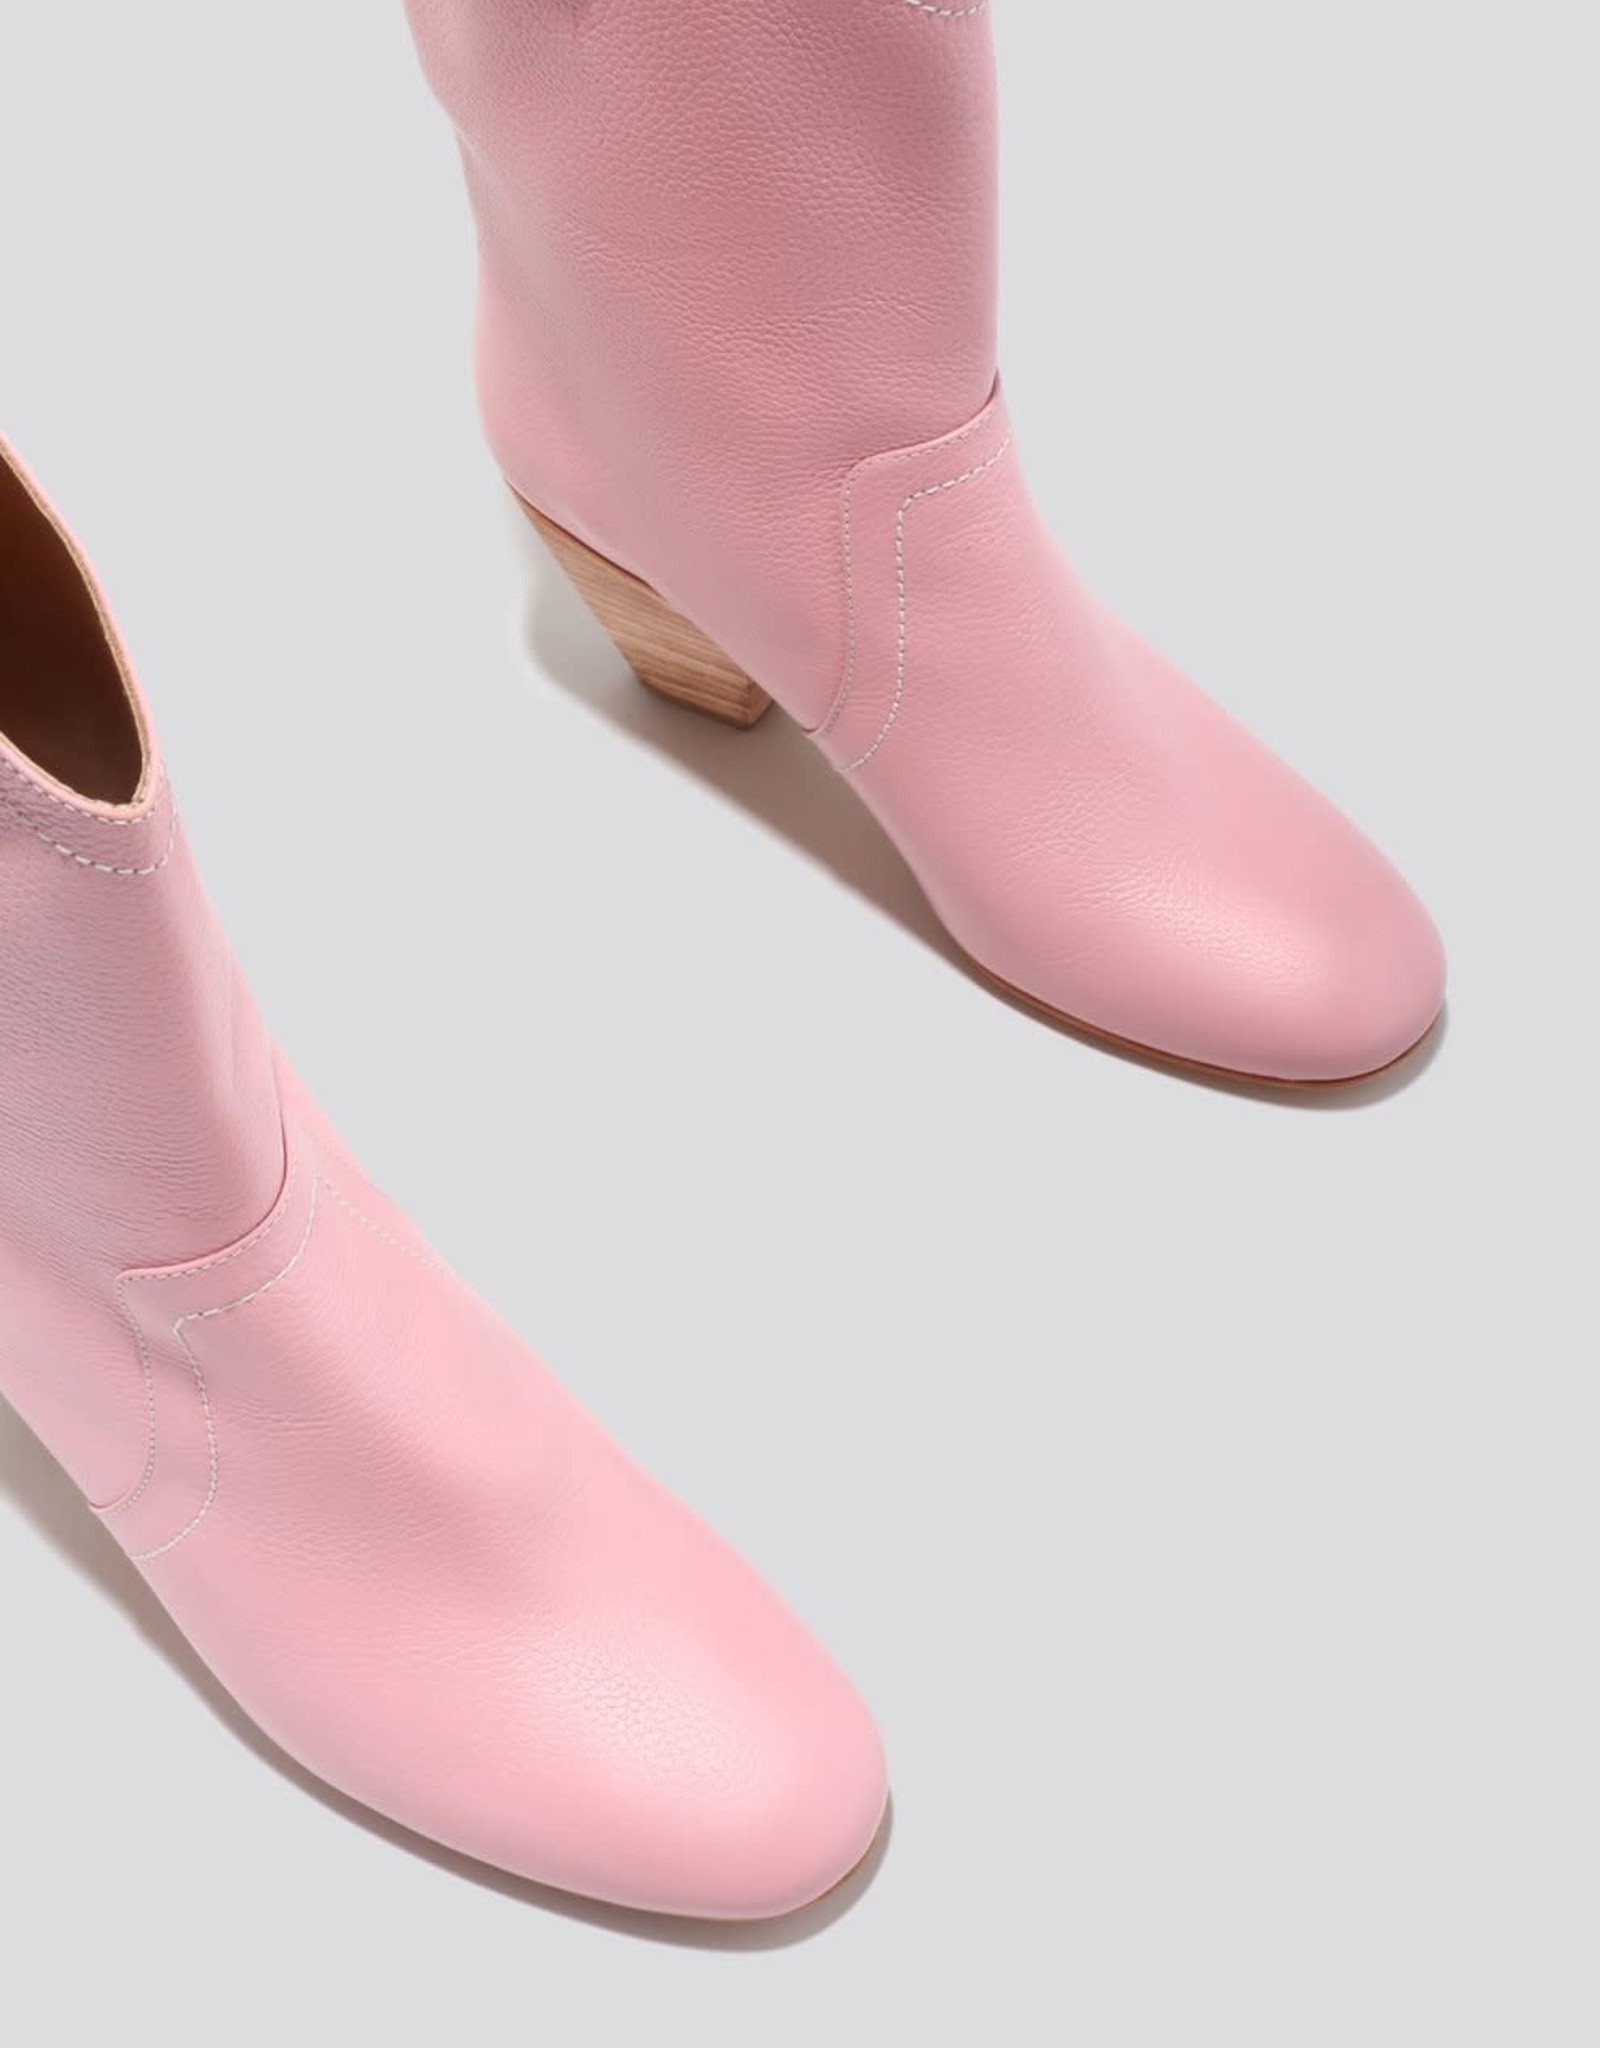 RACHEL COMEY Lydia Boot in Pink Leather